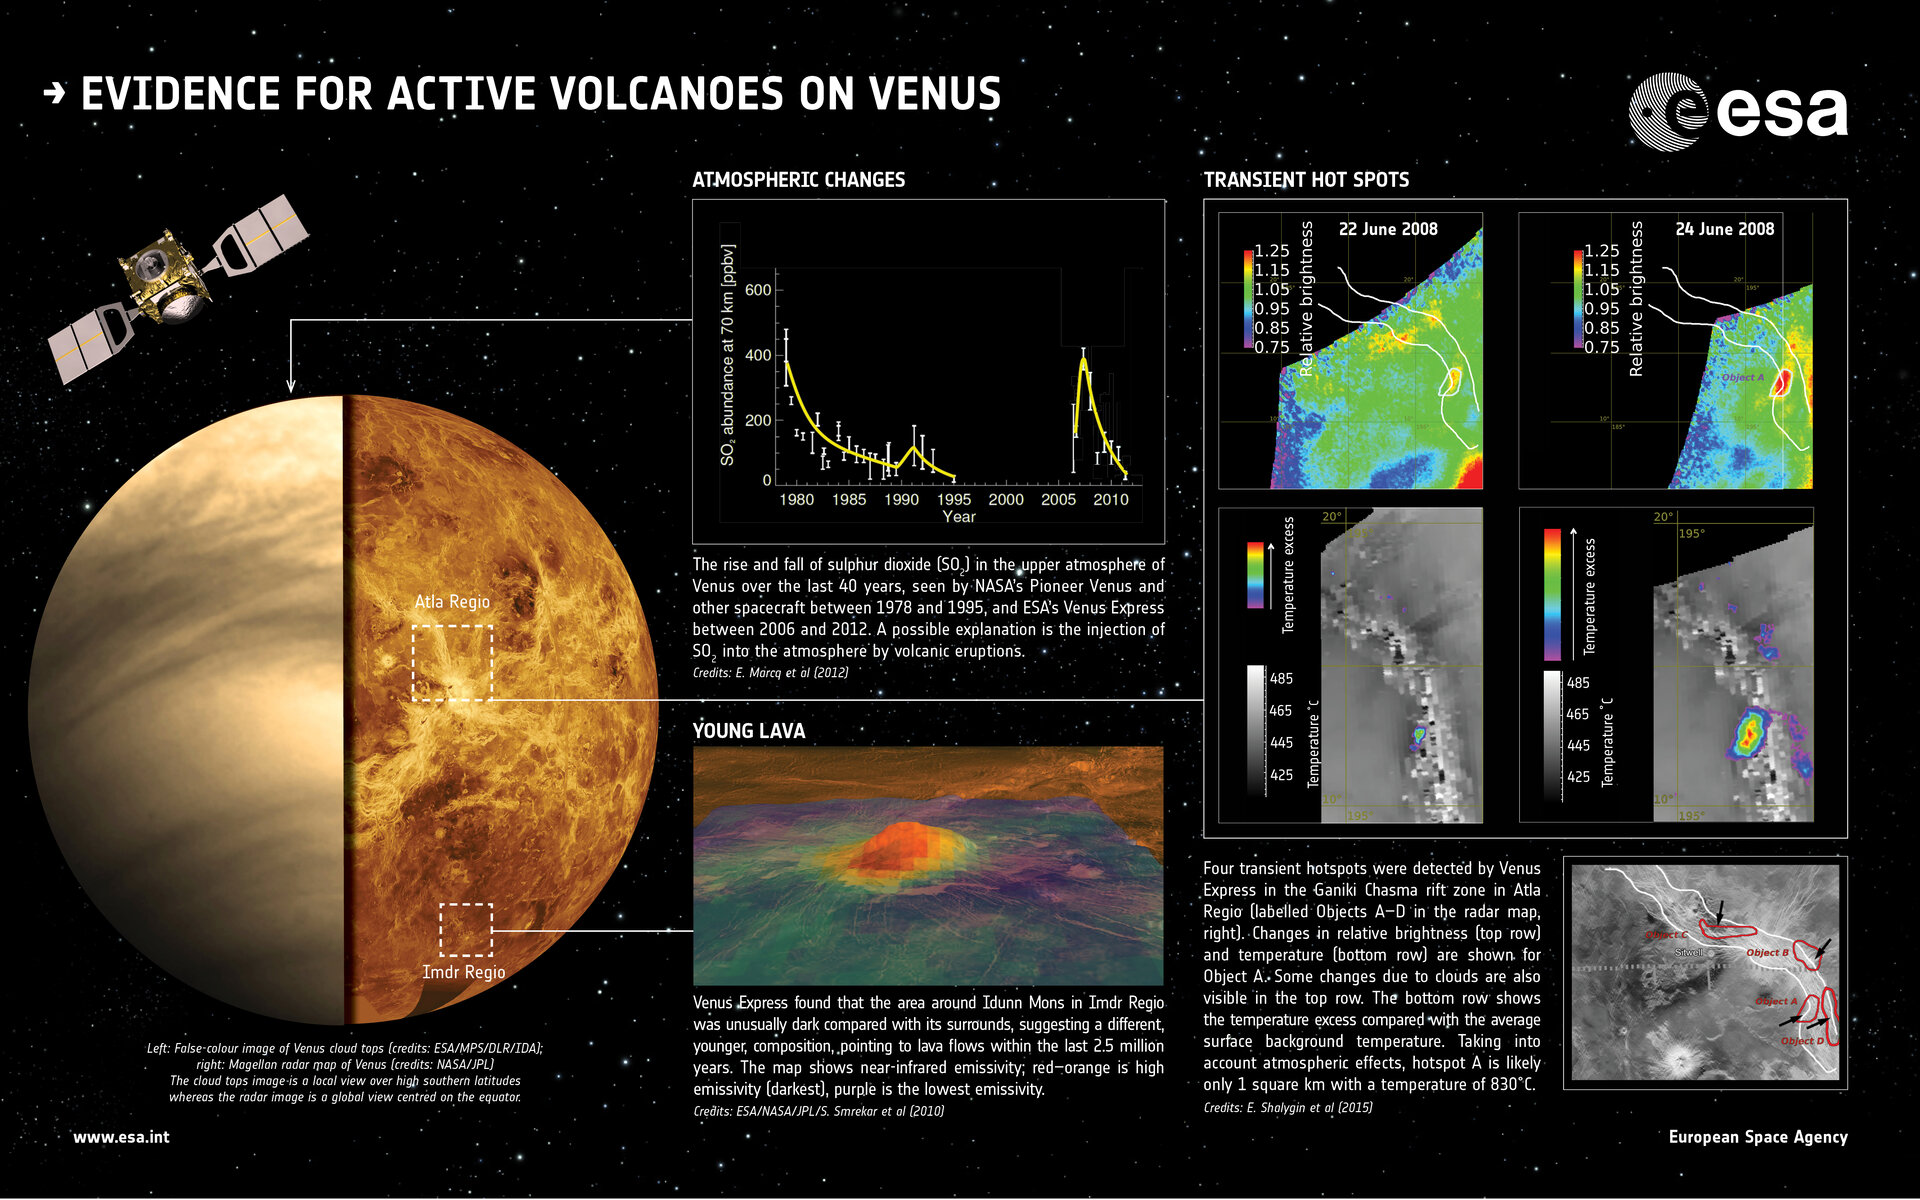 Evidence for active volcanoes on Venus